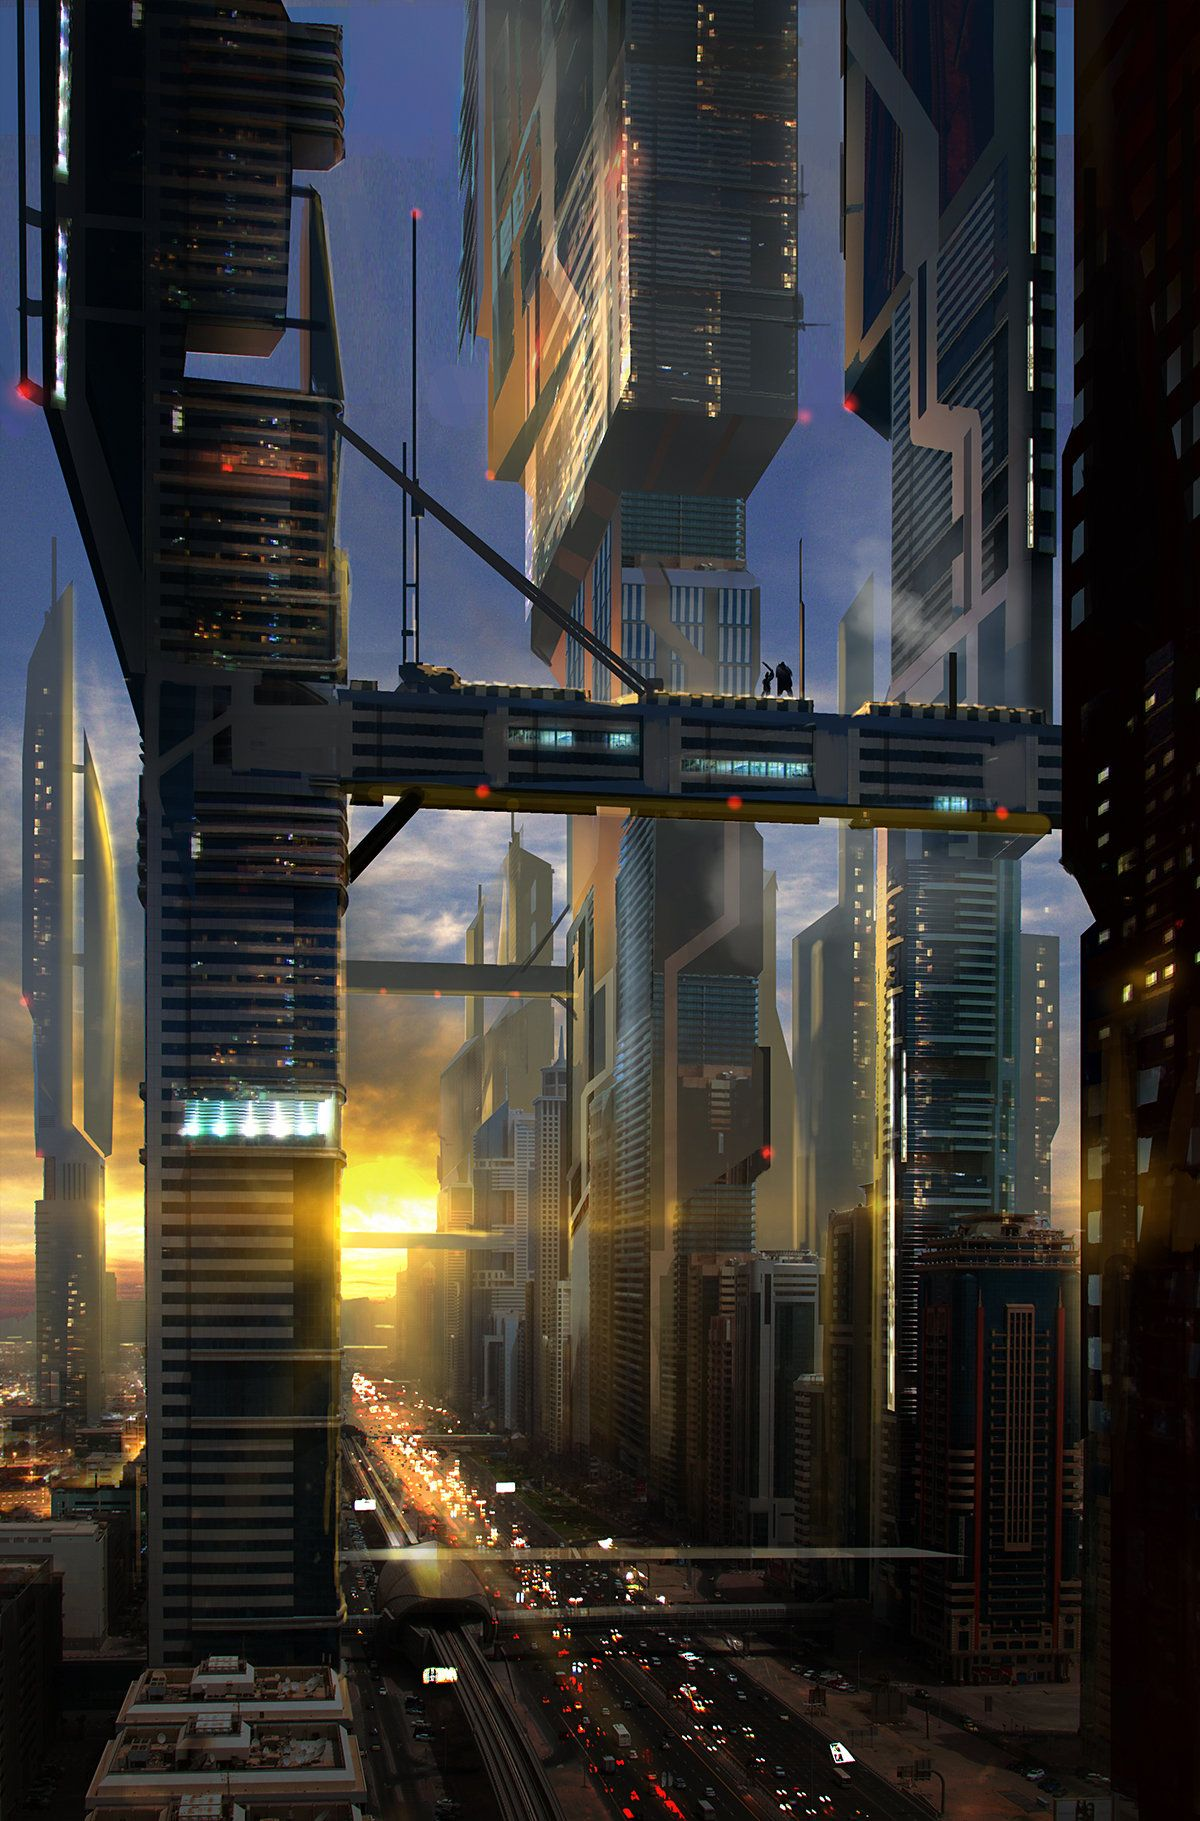 Sci-fi cityscape by Lino Drieghe | Futuristic Cities ...